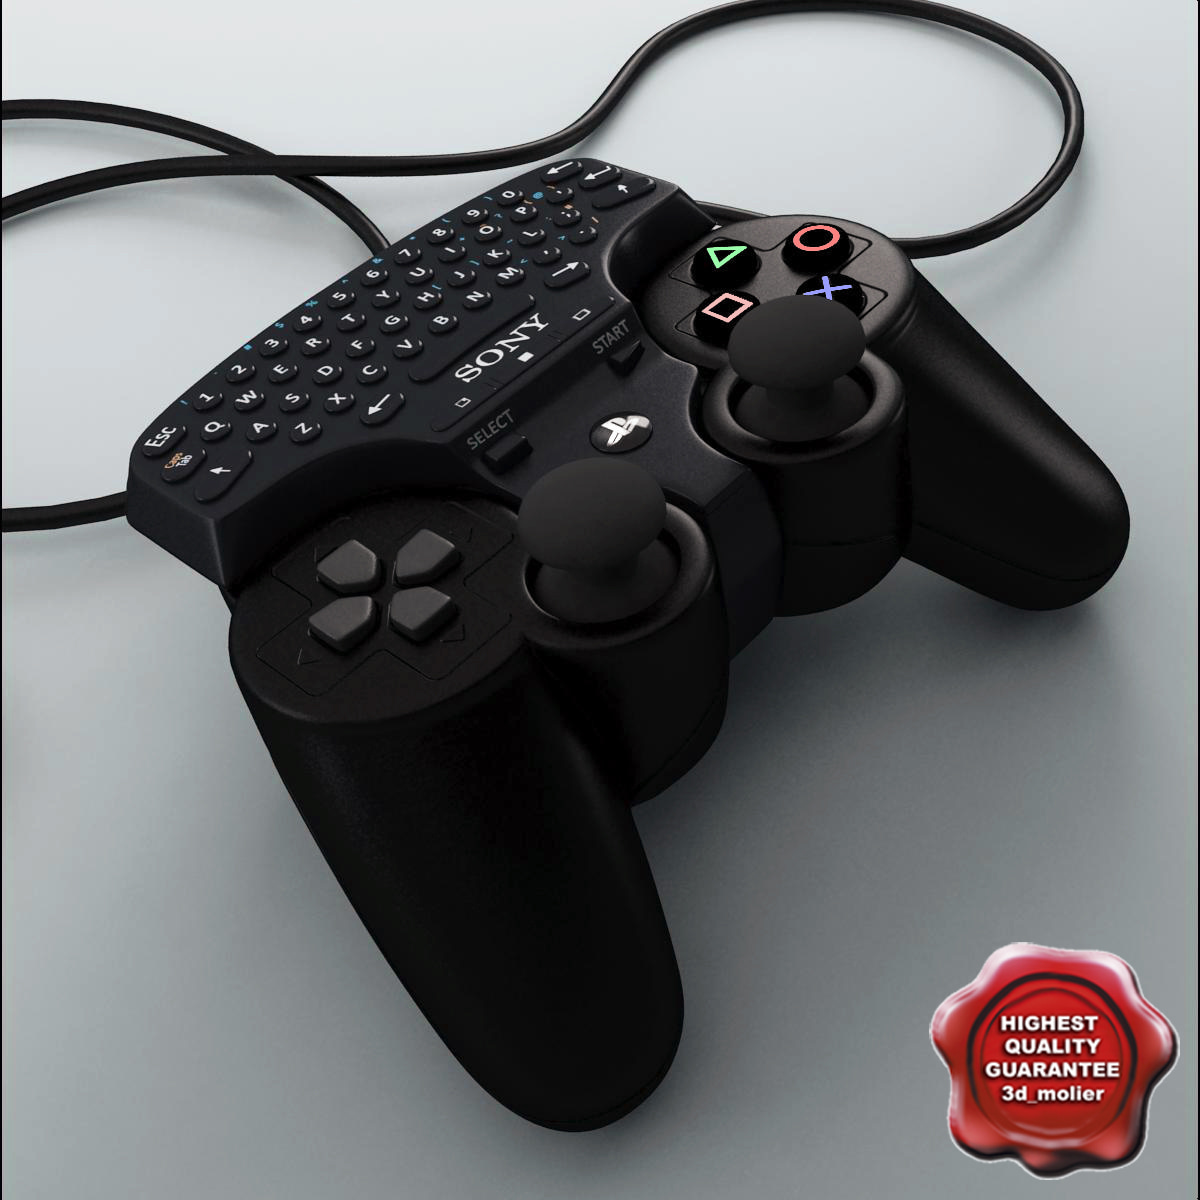 Sony_PS2_Controller_With_Keyboard_00.jpg